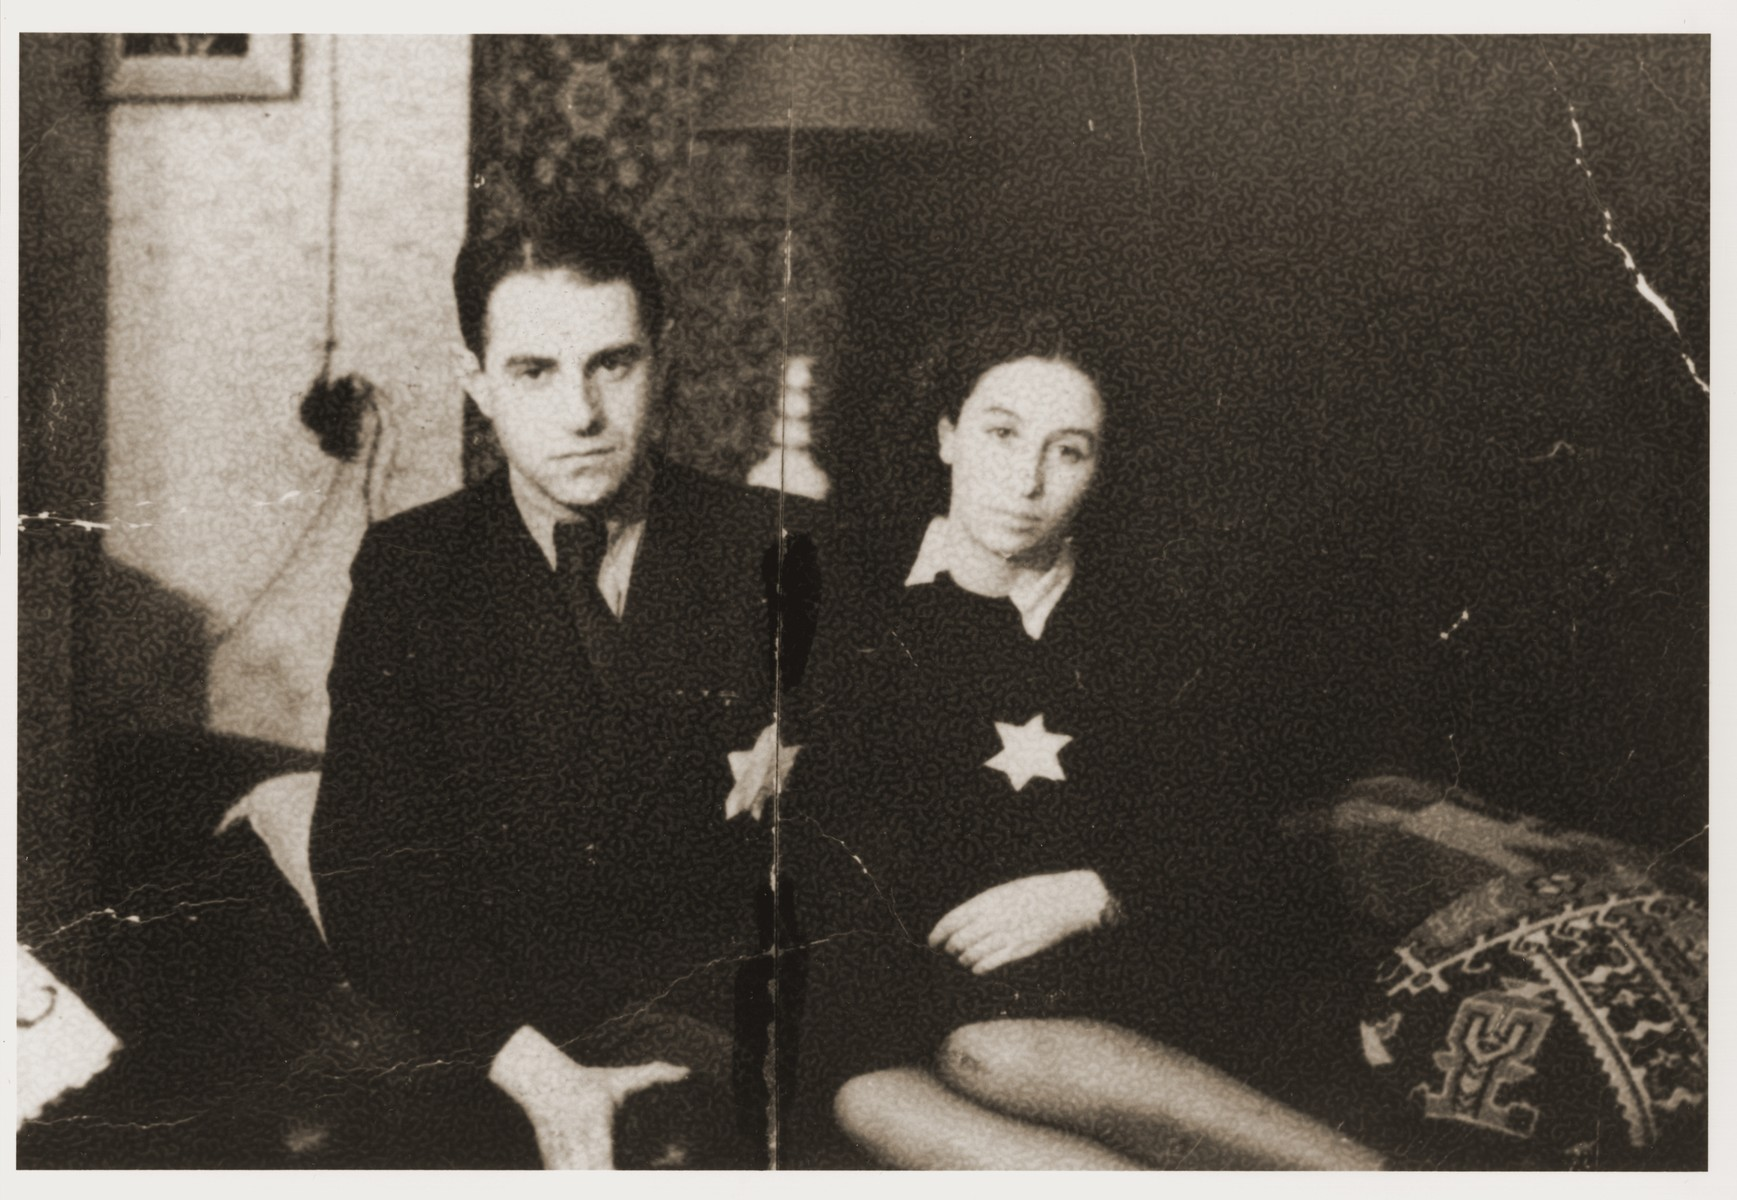 Deputy Police Chief Yehuda Zupovitz poses with his wife, Dita, in their apartment in the Kovno ghetto two weeks before his arrest.